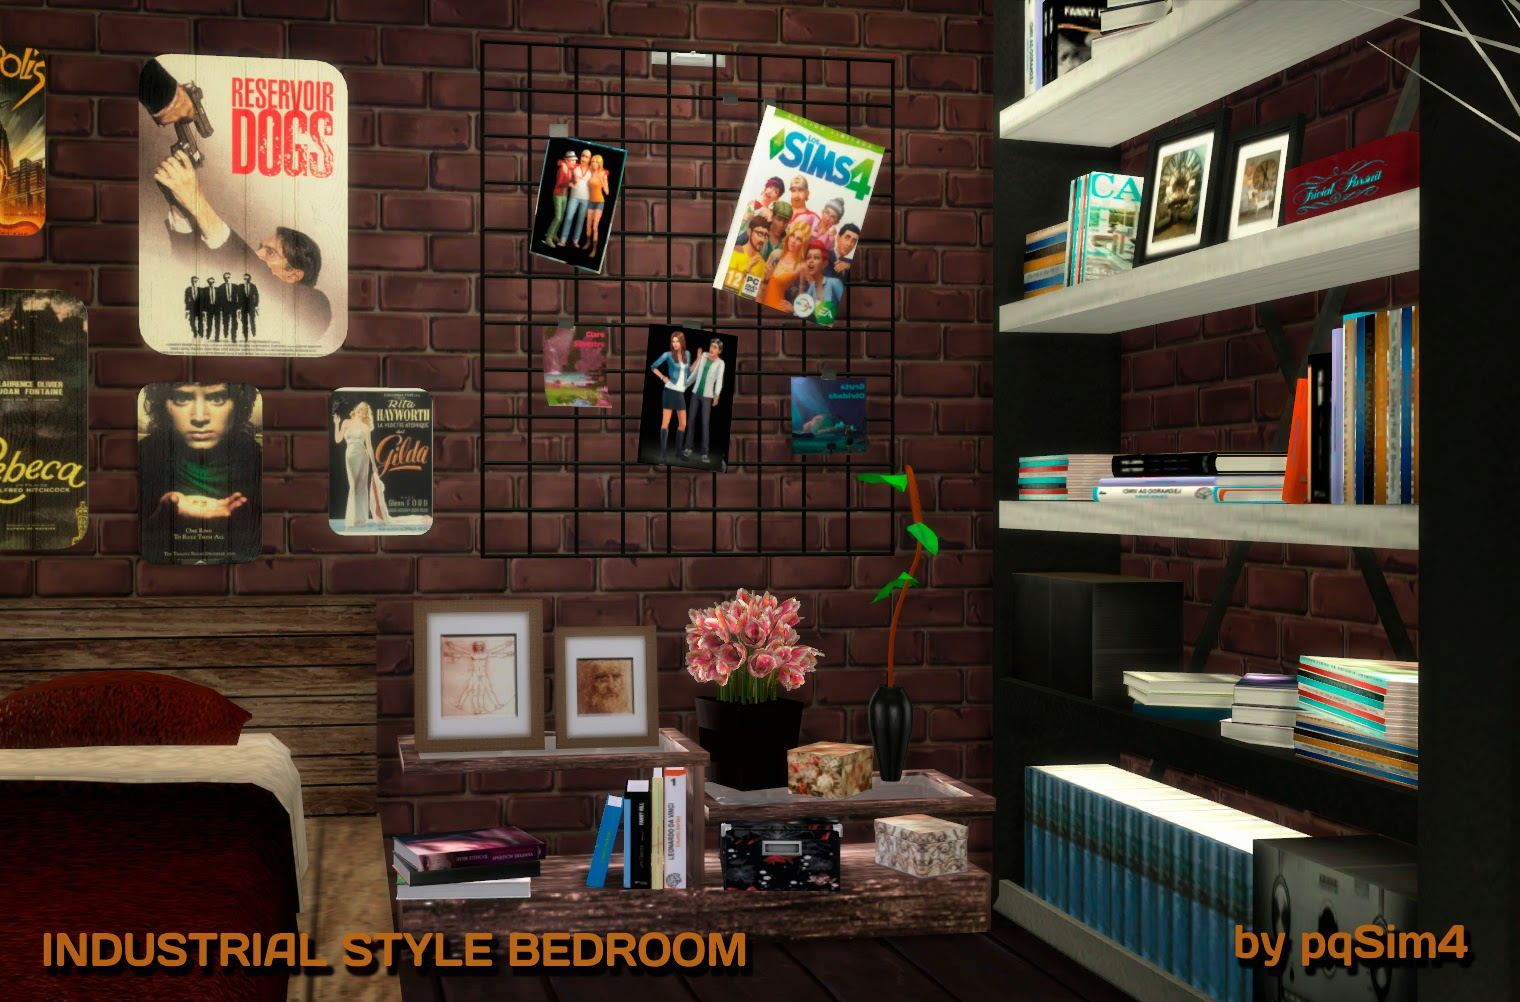 Sims 4 industrial style bedroom for Dormitorio sims 4